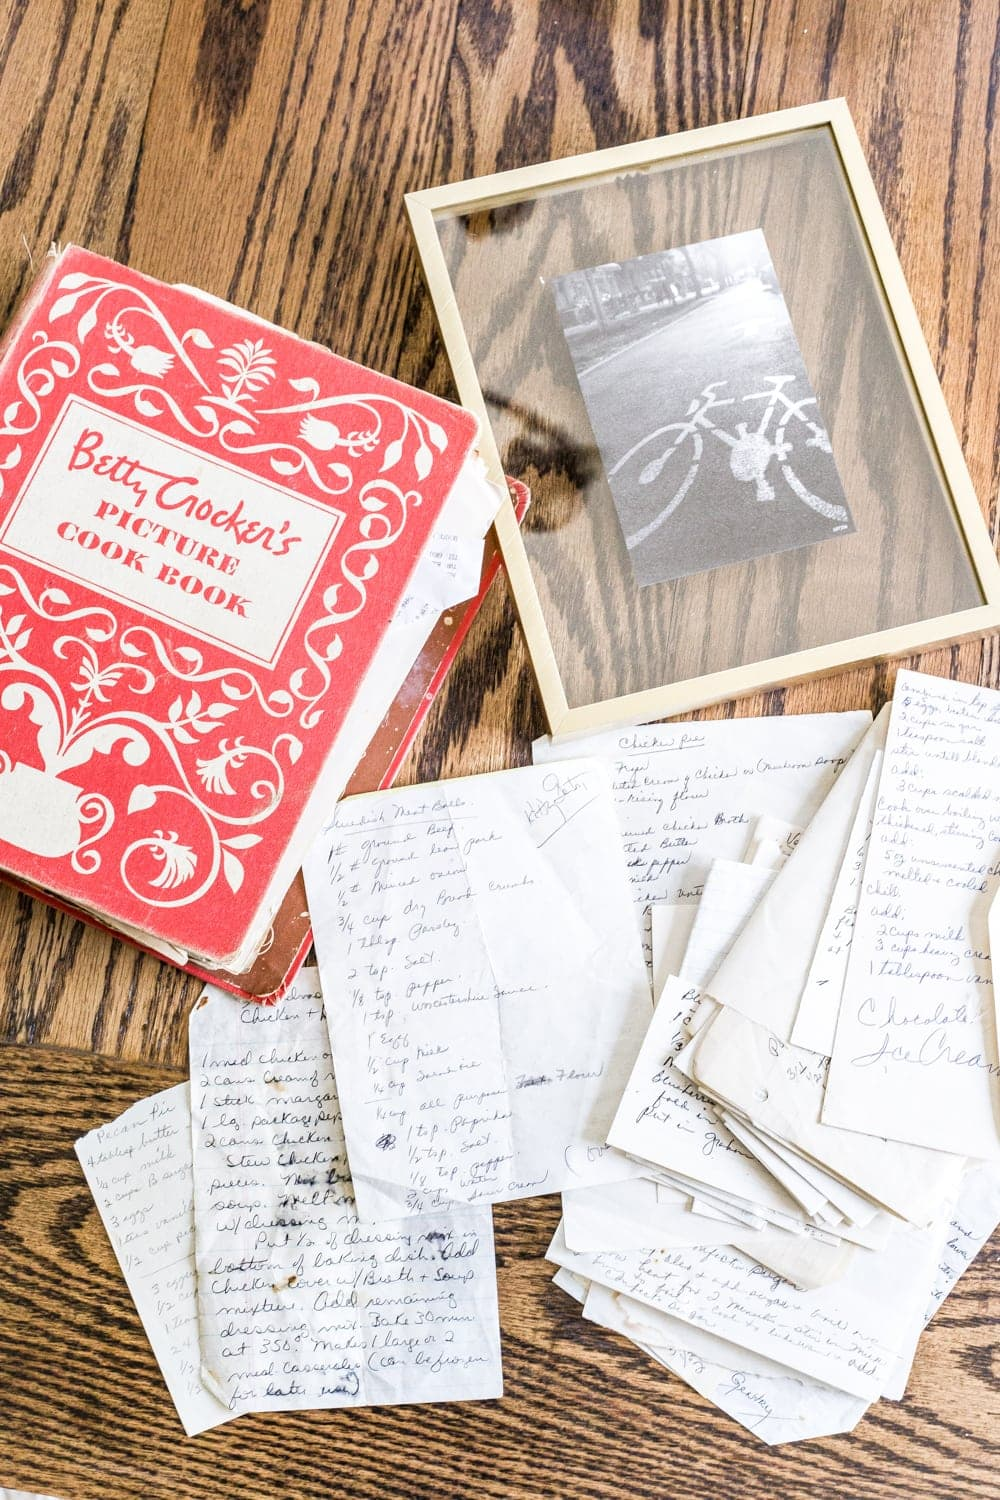 How To Frame Pictures How To Preserve And Frame Handwritten Recipes And Letters Bless